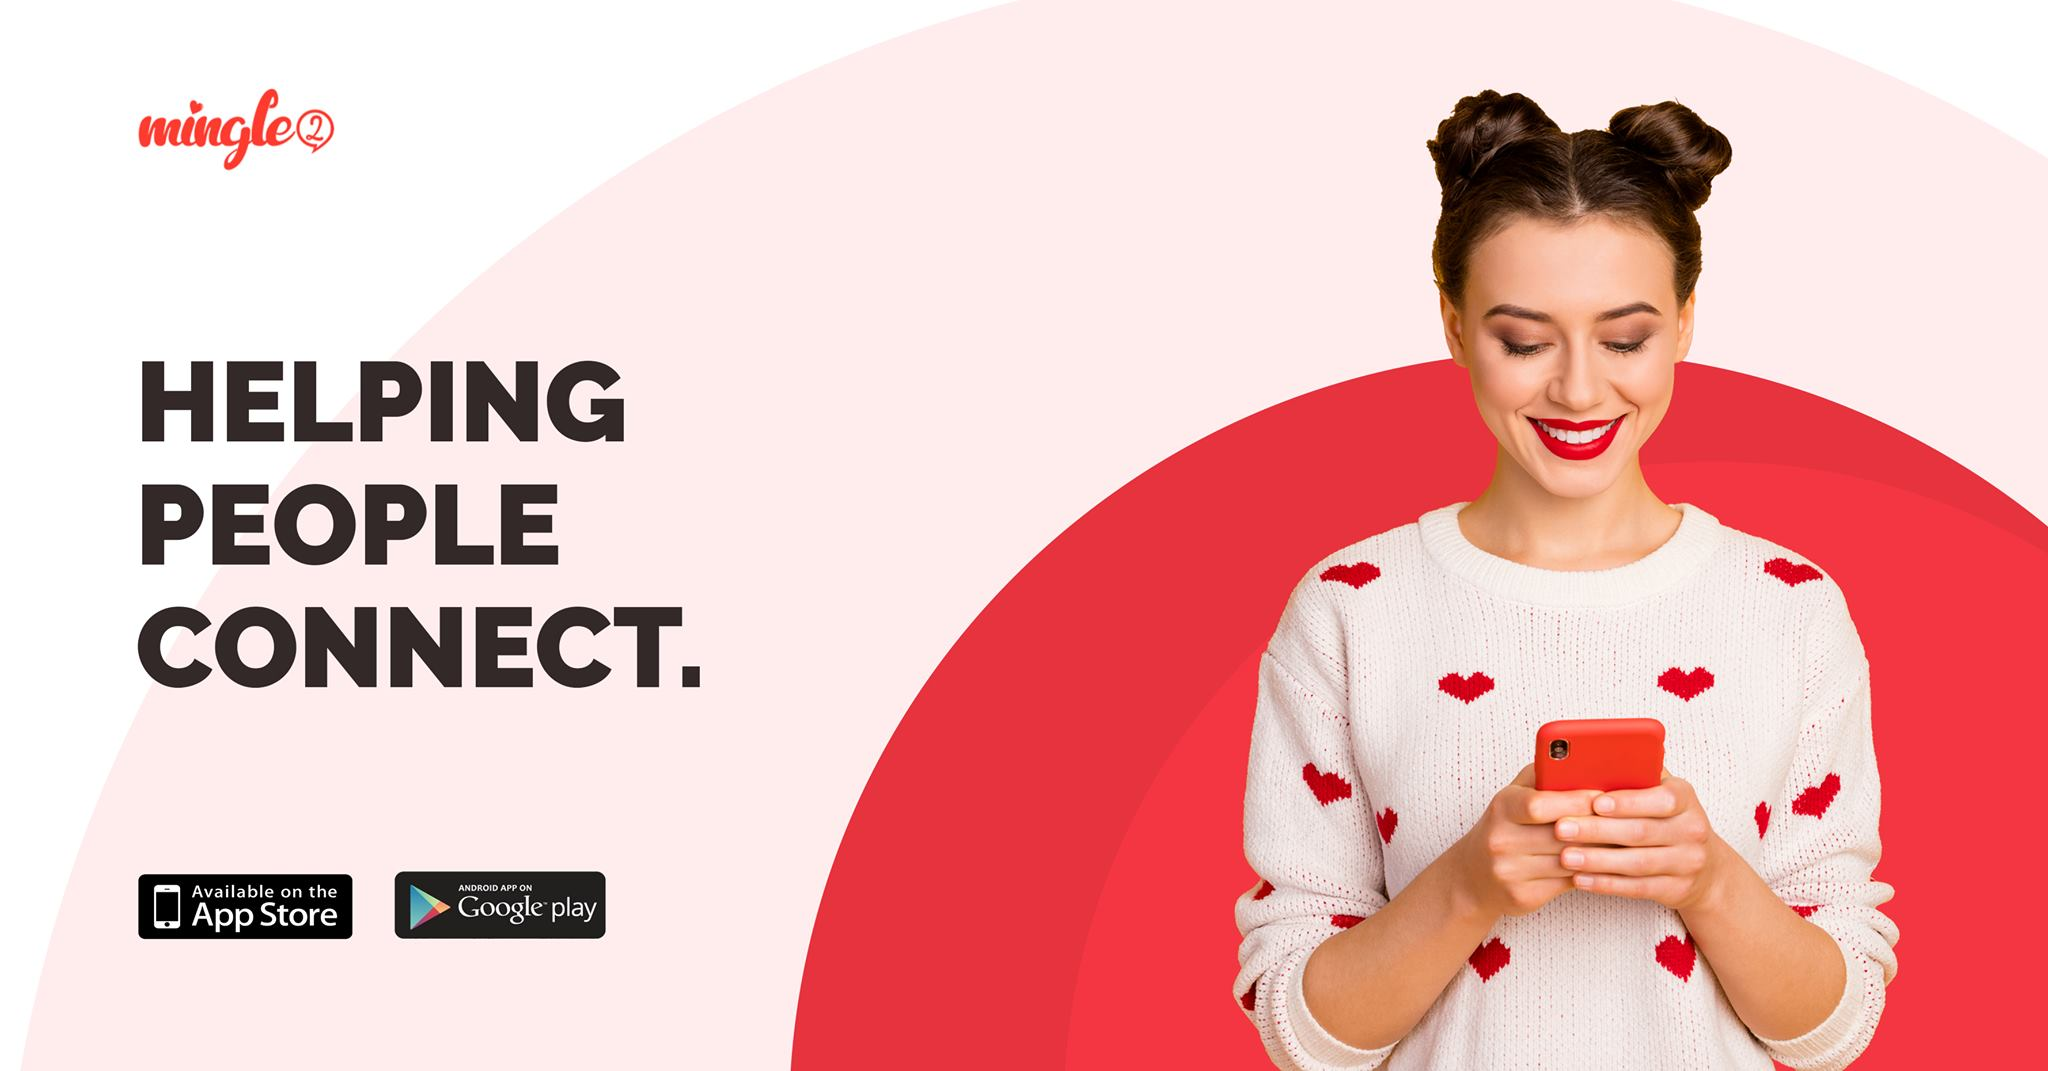 Mingle2 Integrates RealMe to Implement Background Checks